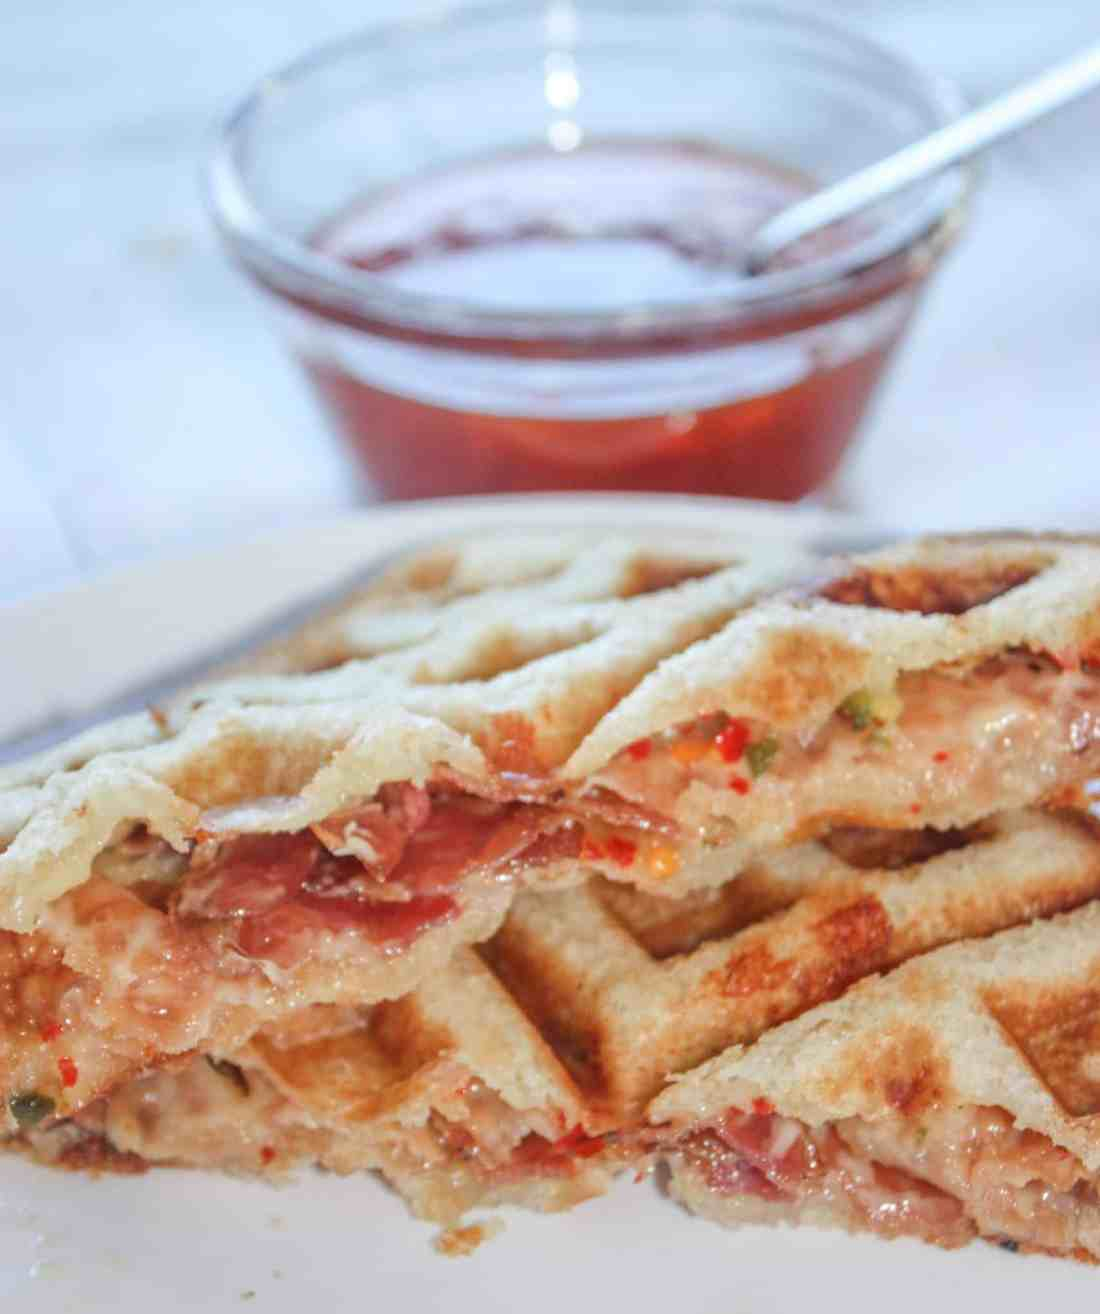 Peppery mozzarella cheese, topped with bacon slices, layered between slices of gluten free bread pressed in the waffle iron to create an appetizing delight.  Spicy Waffled Grilled Cheese with Bacon wakes up the taste buds with a burst of heat.